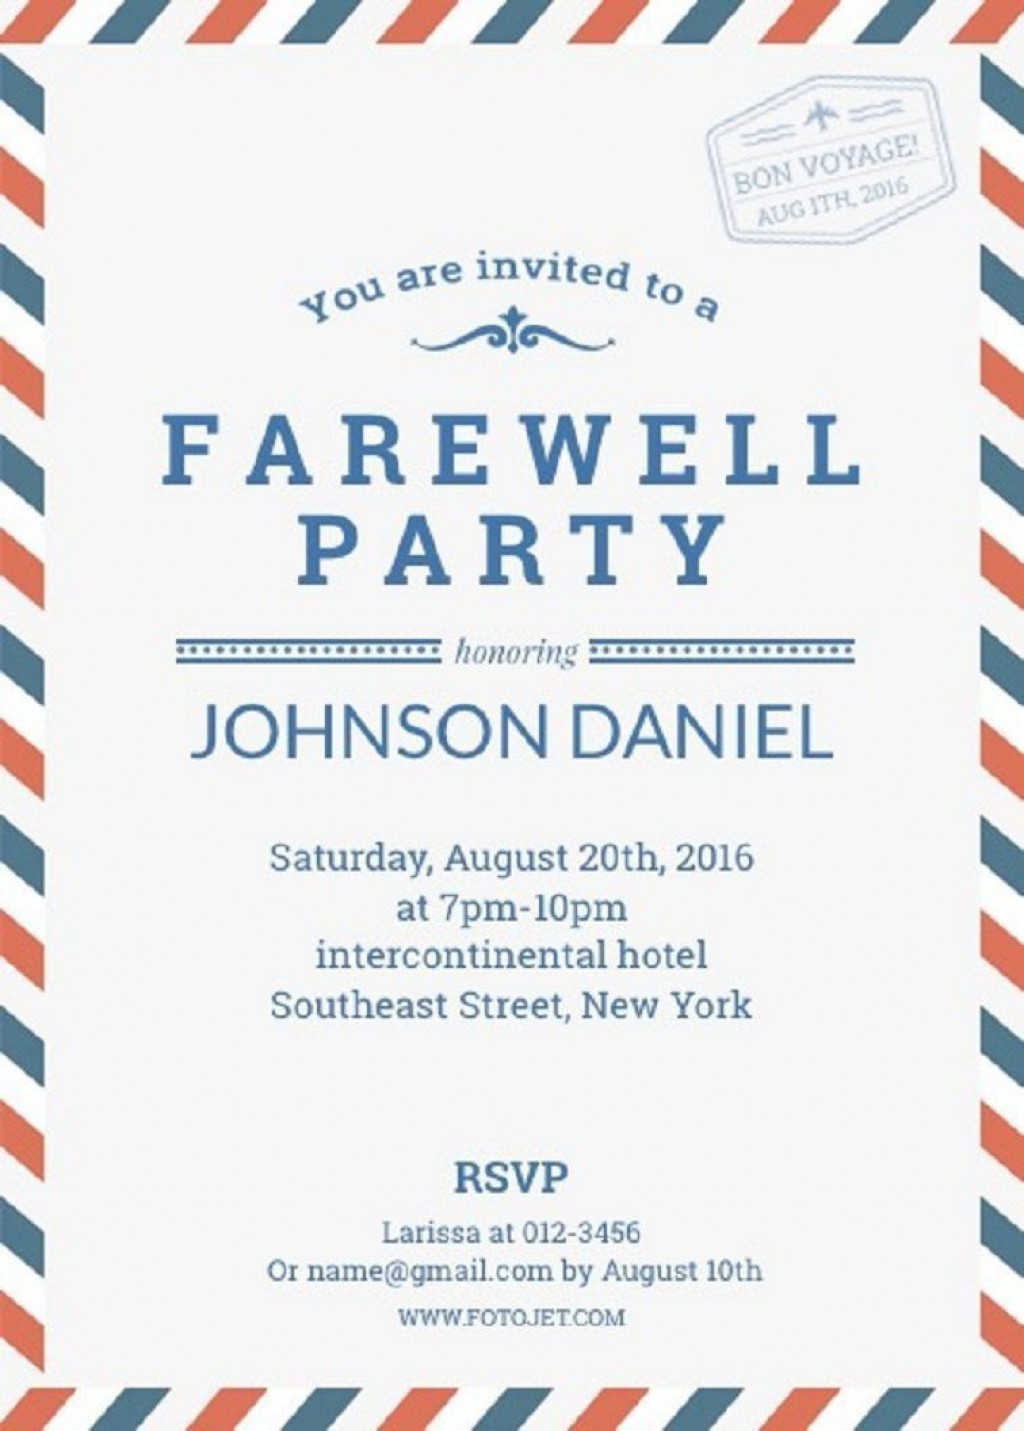 004 Shocking Going Away Party Invitation Template High Definition  Free PrintableLarge